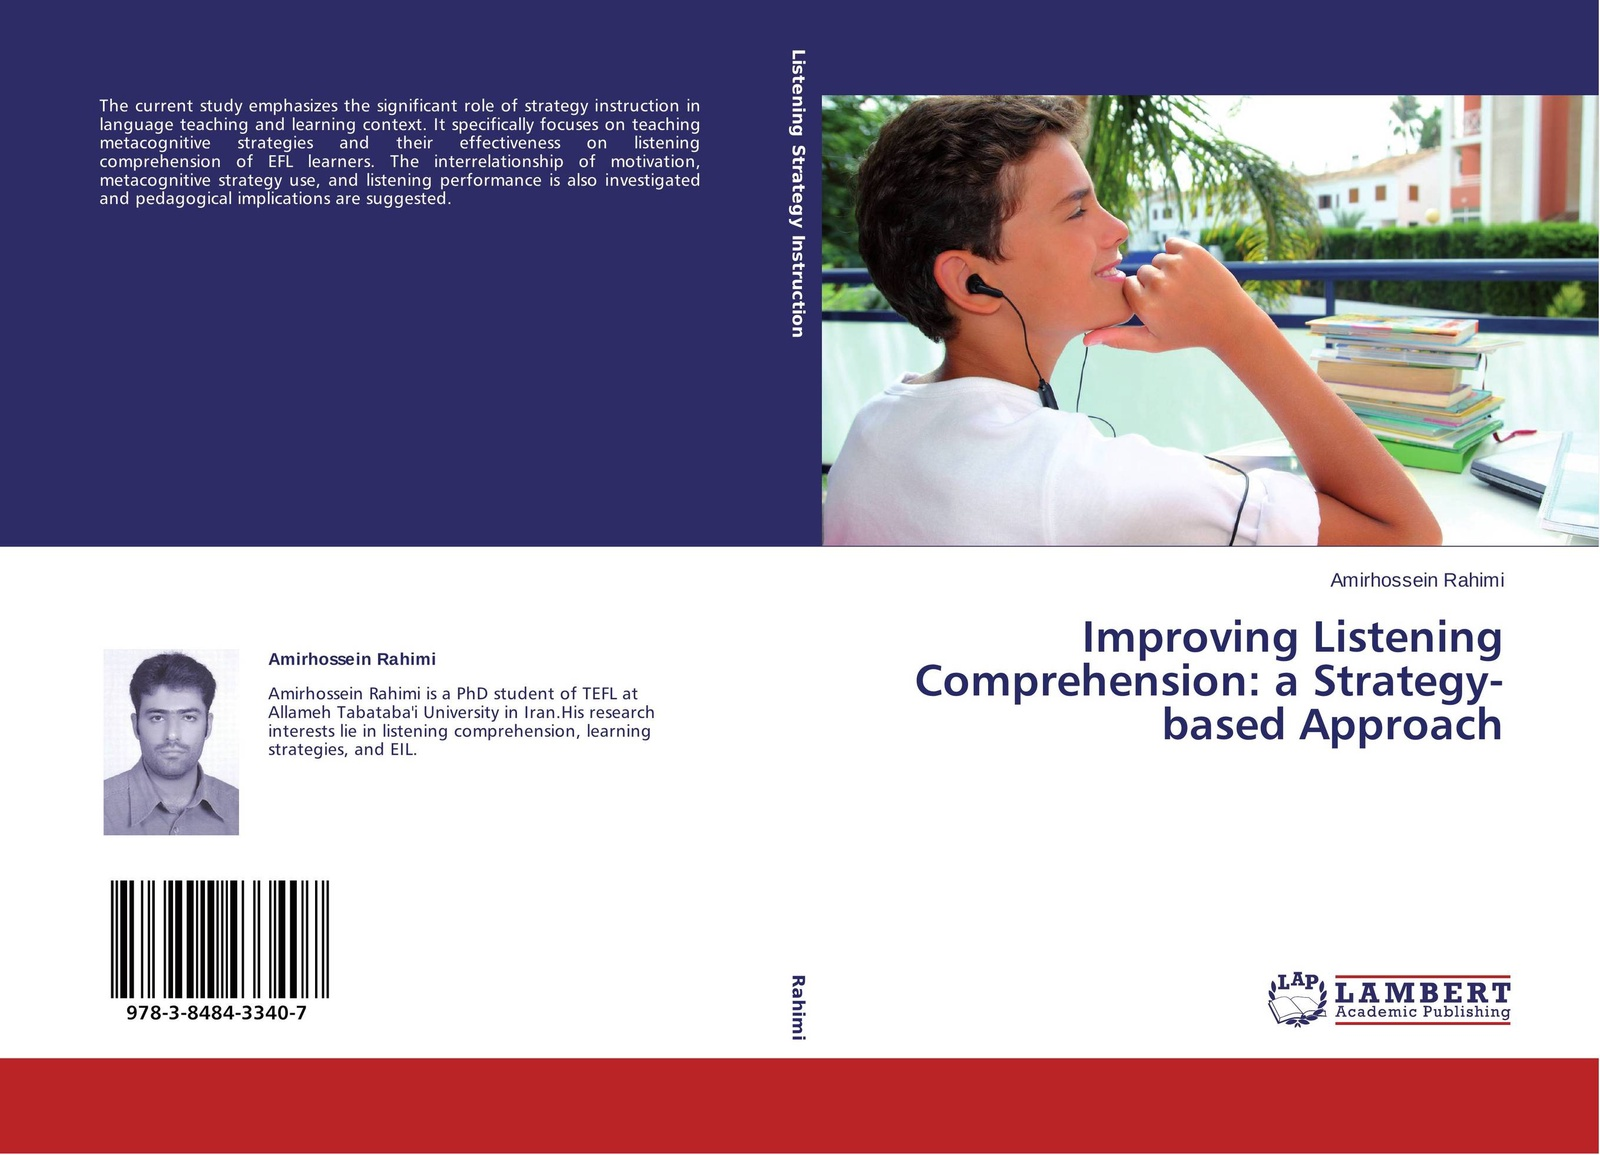 Amirhossein Rahimi Improving Listening Comprehension: a Strategy-based Approach цена